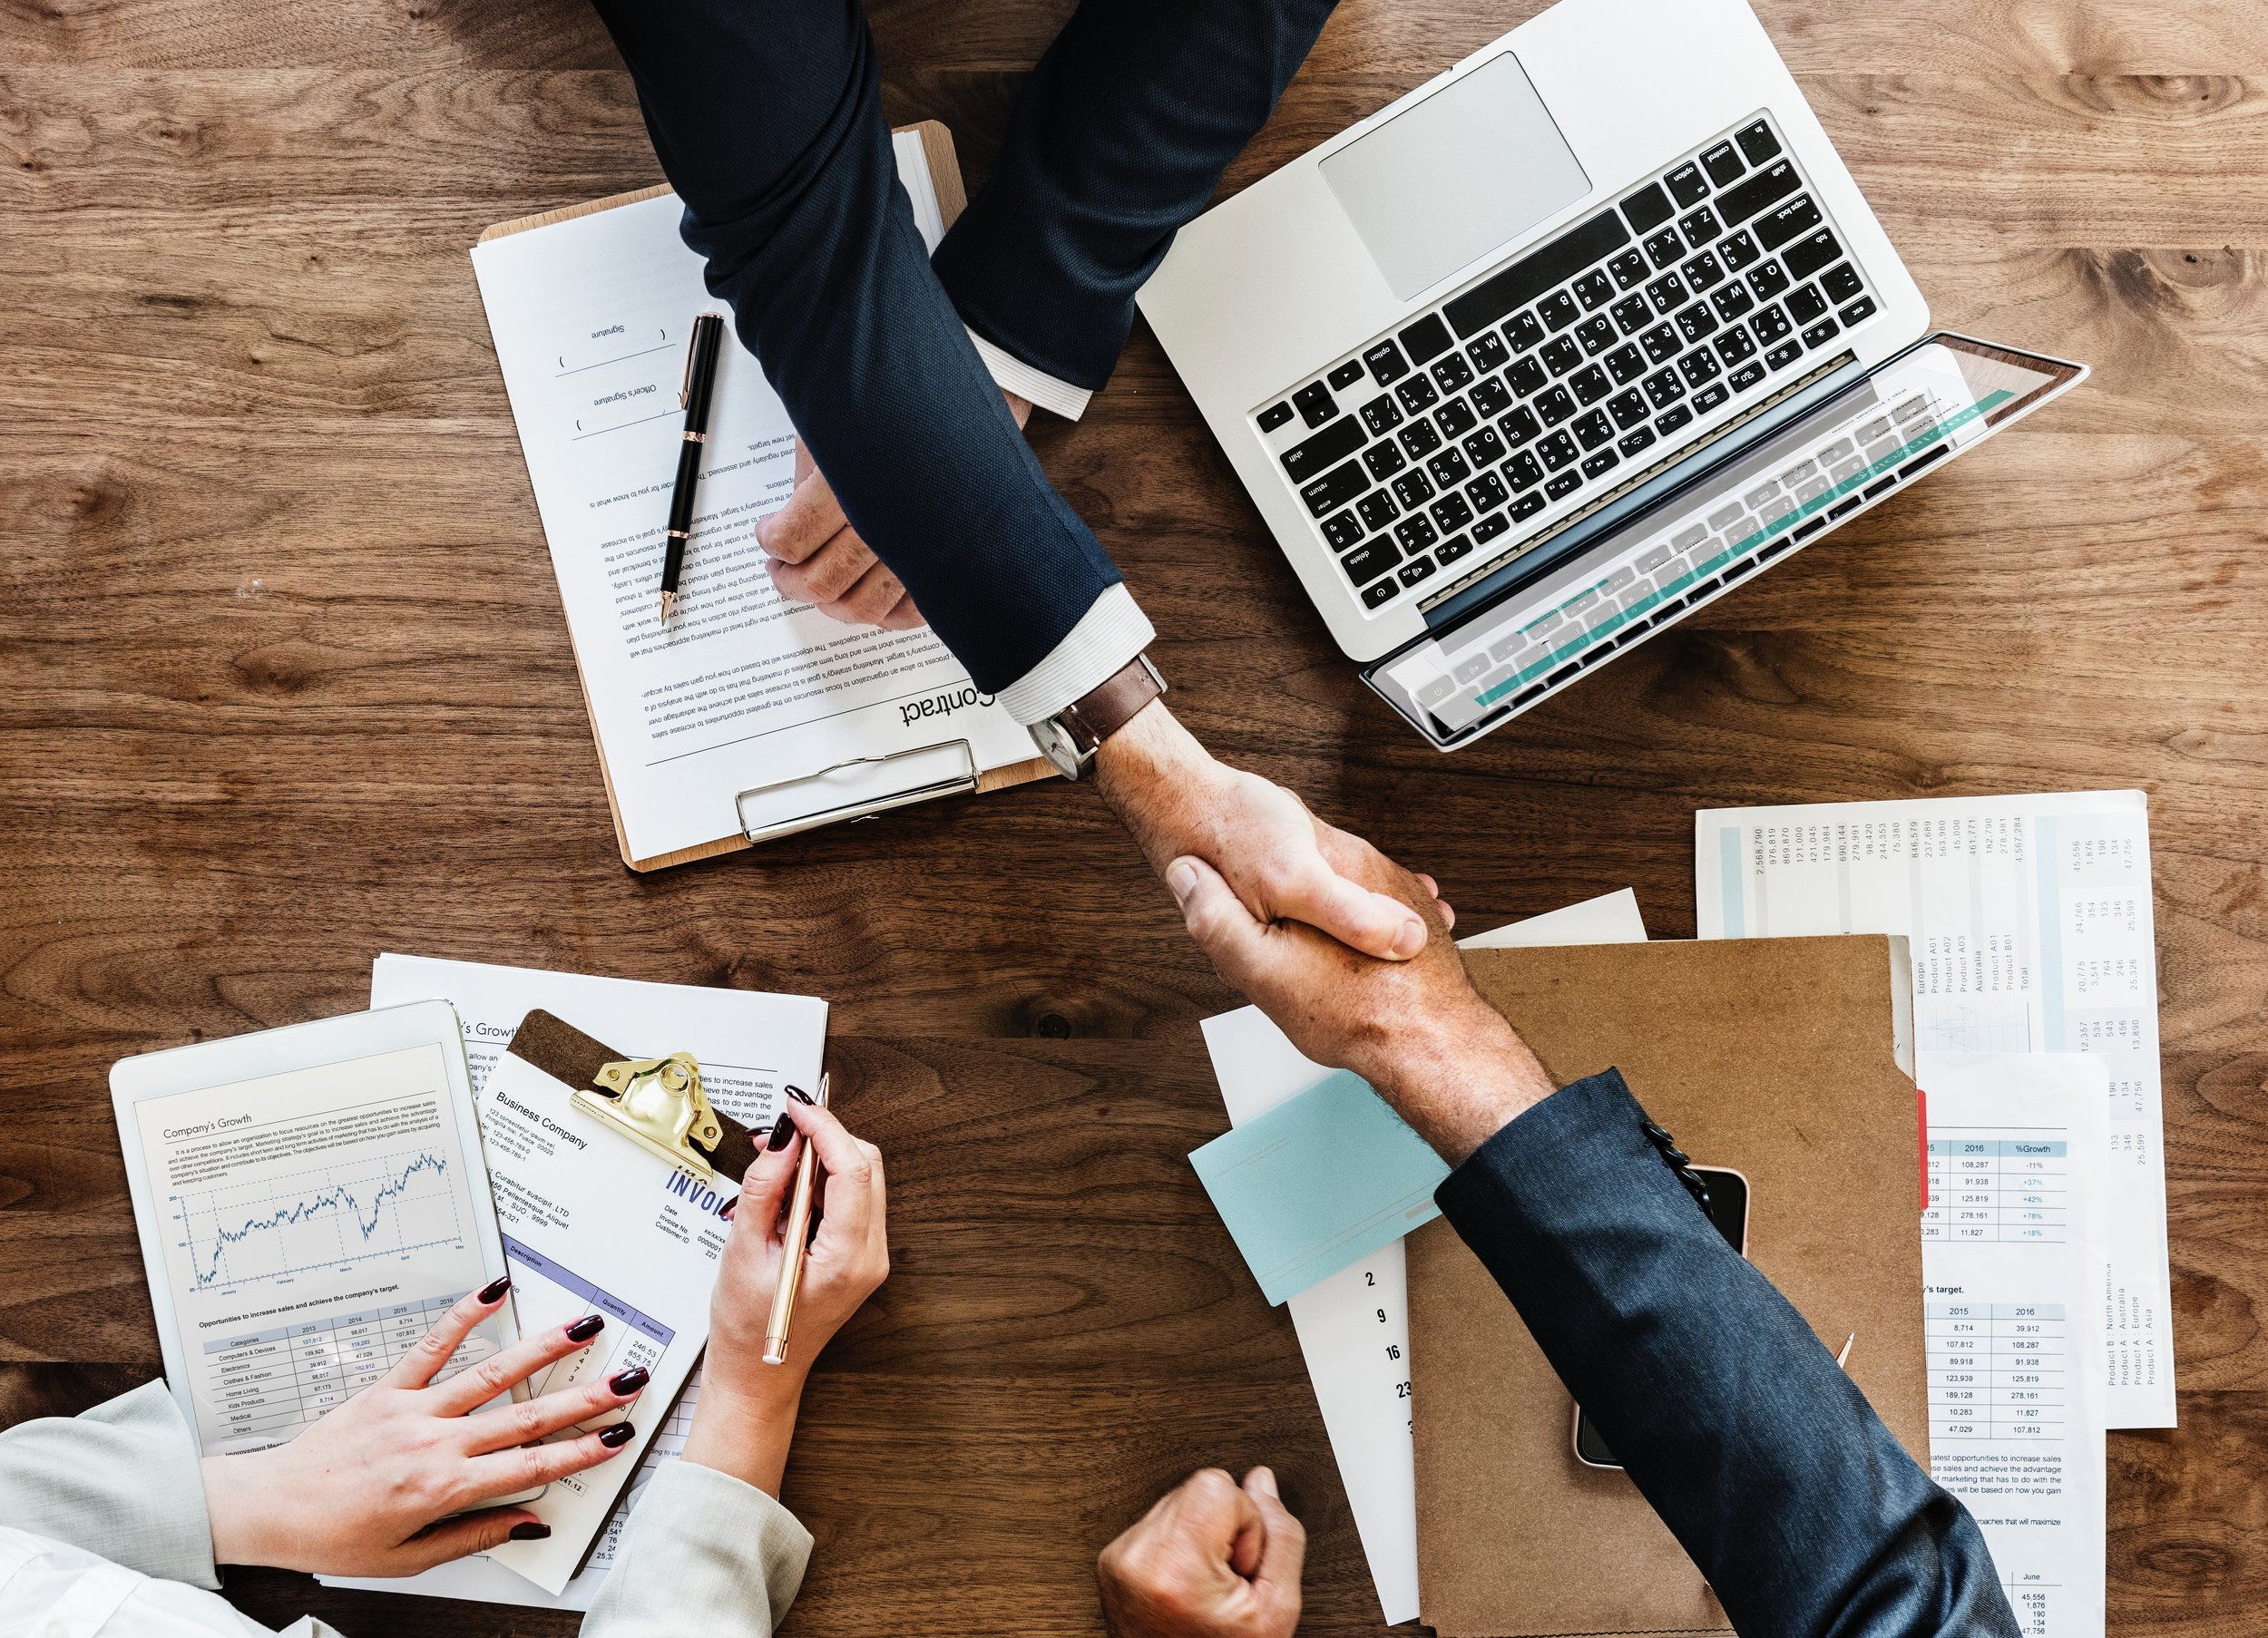 Cultivate Healthy Business Structures For Success - The company has produced outstanding results for several companies from small start-up companies through mid-size well-established companies.